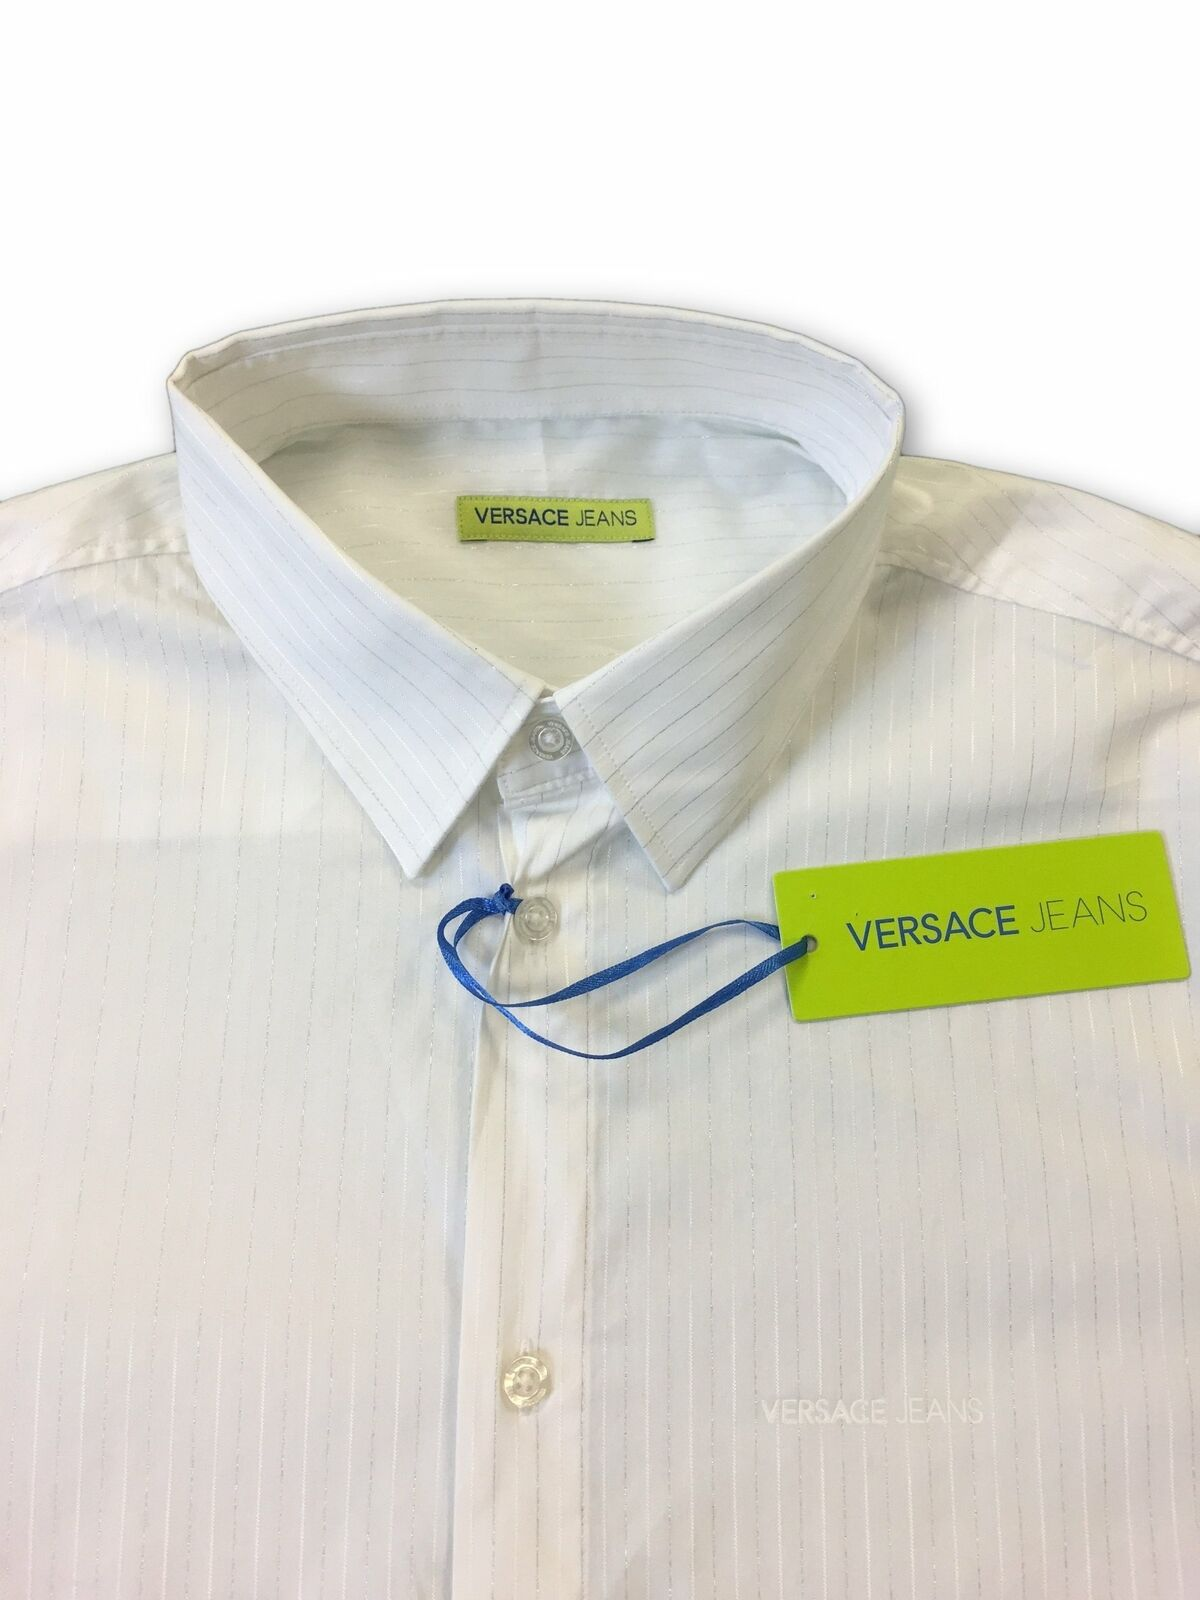 Versace-Jeans-039-Elegant-039-slim-fit-shirt-in-white-and-silver-stripe-rrp-179-99 thumbnail 8